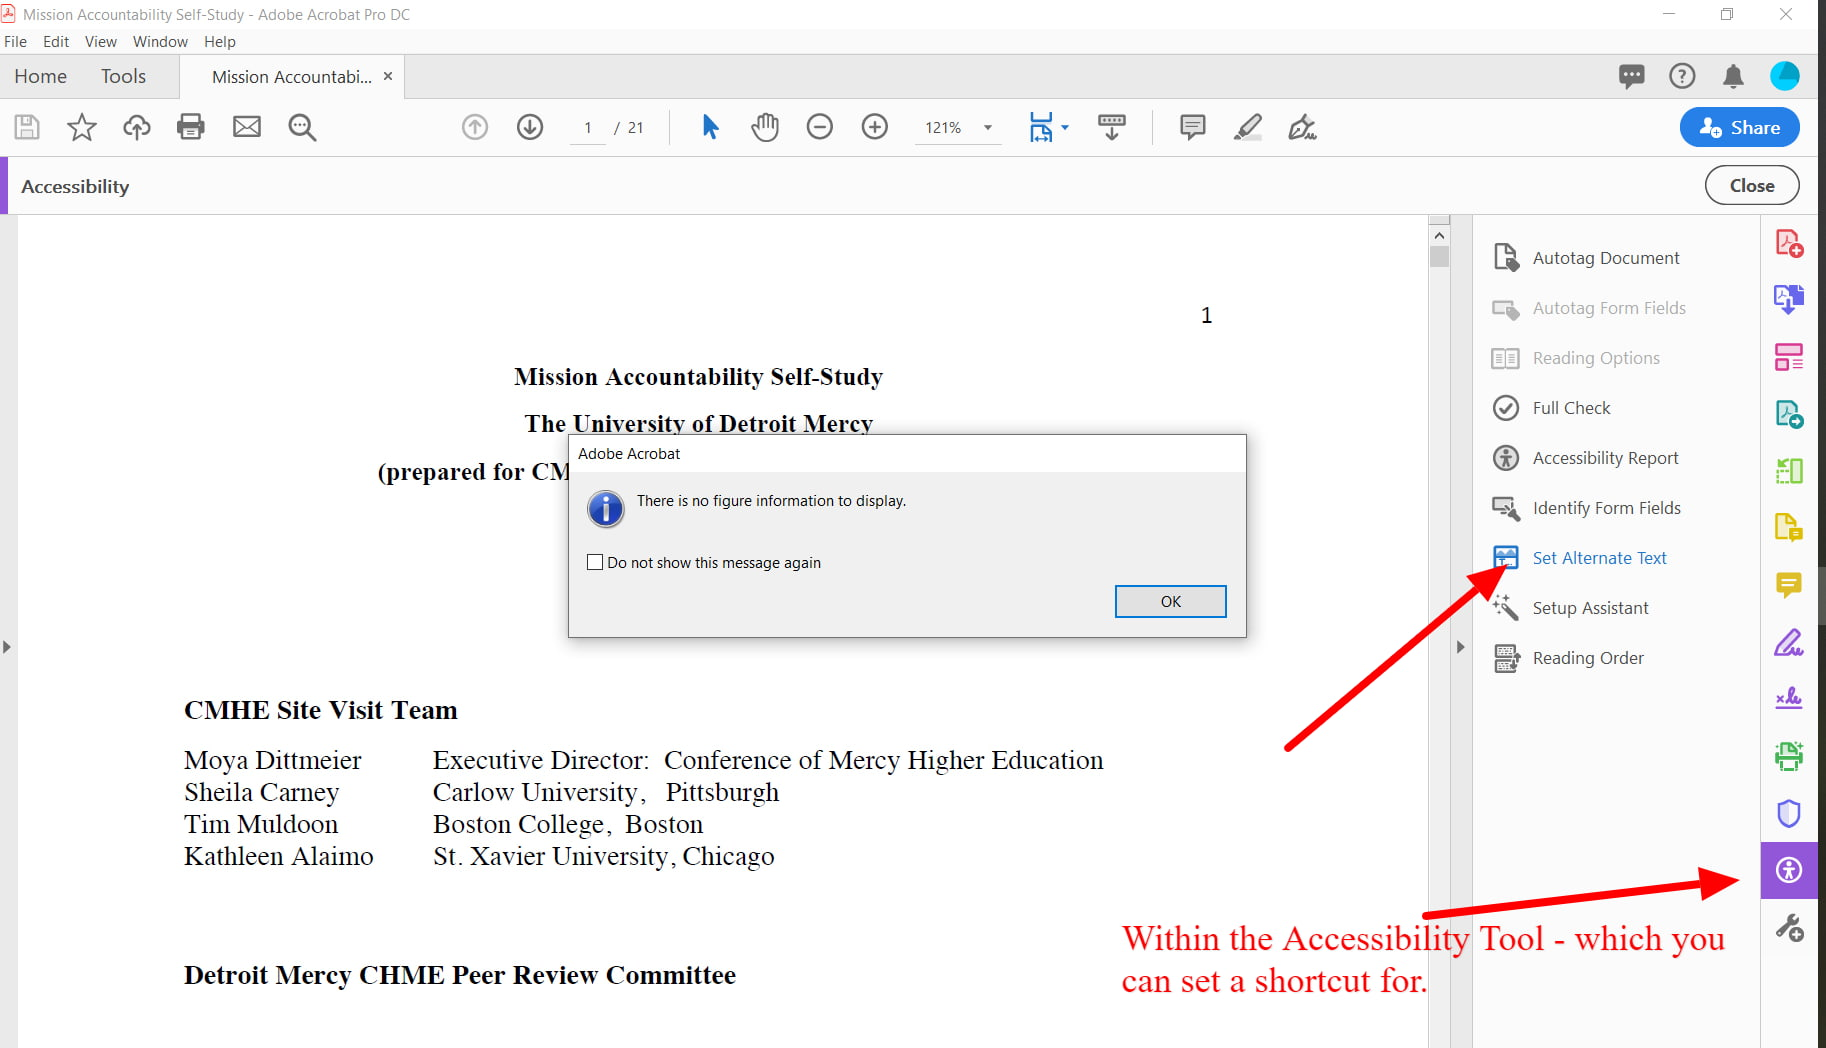 in Accessibility Tool mneu, select alt text and cycle through all images in the set alt text window and add descriptive text